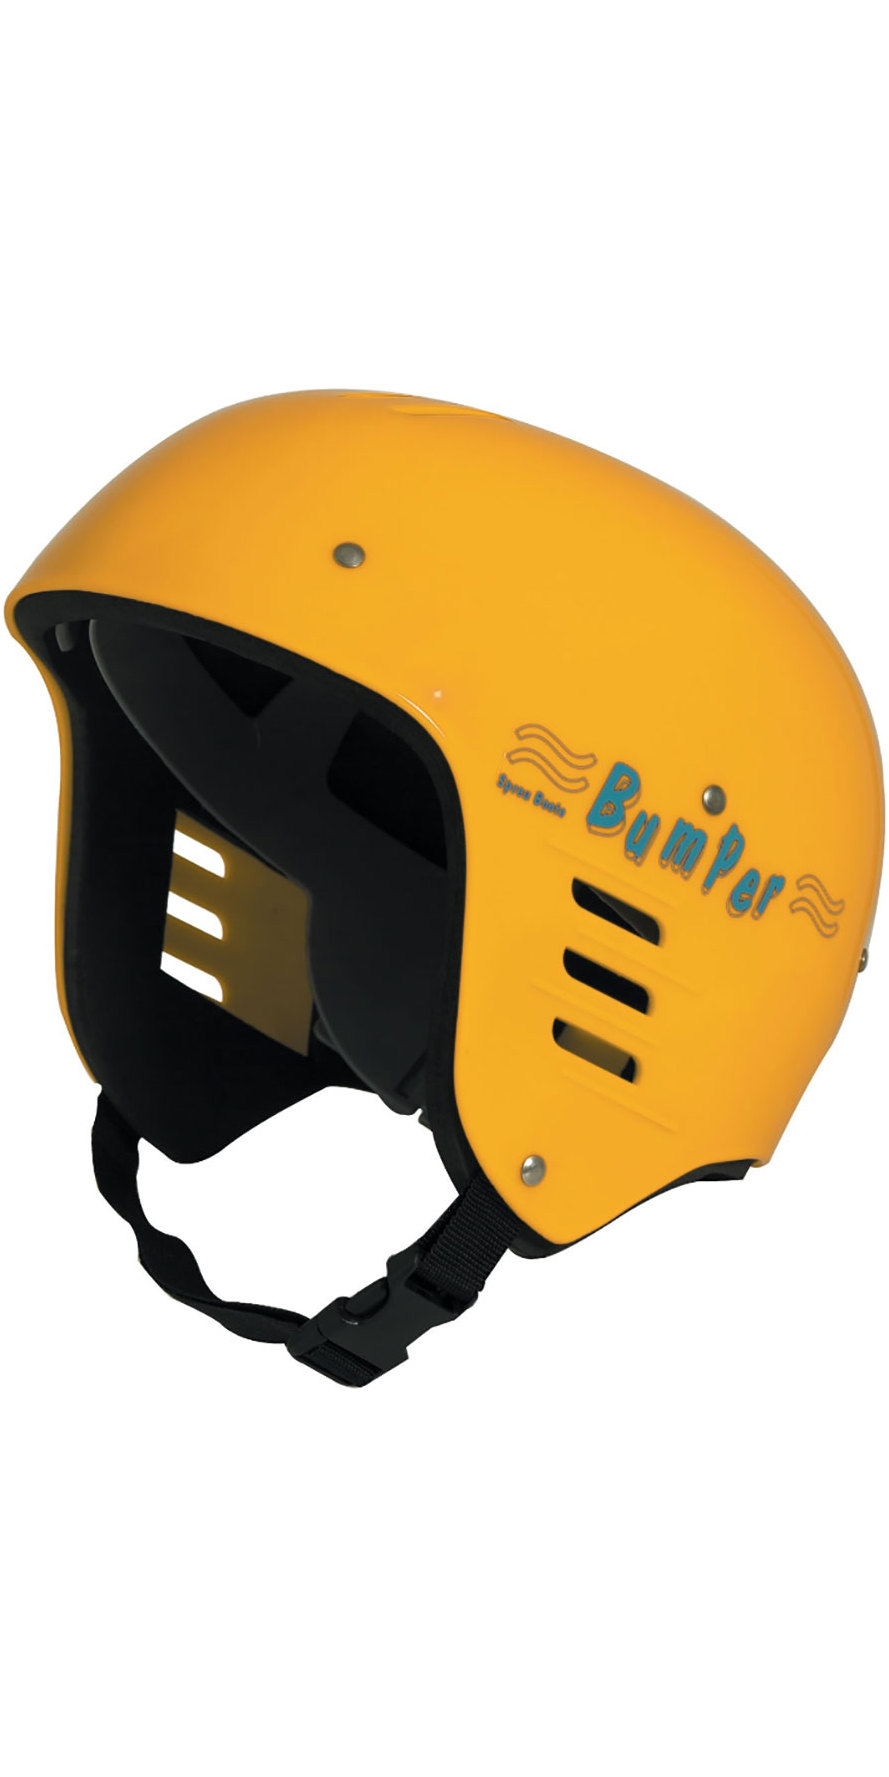 2019 Nookie Parachoques Adulto Kayak Casco Amarillo He00